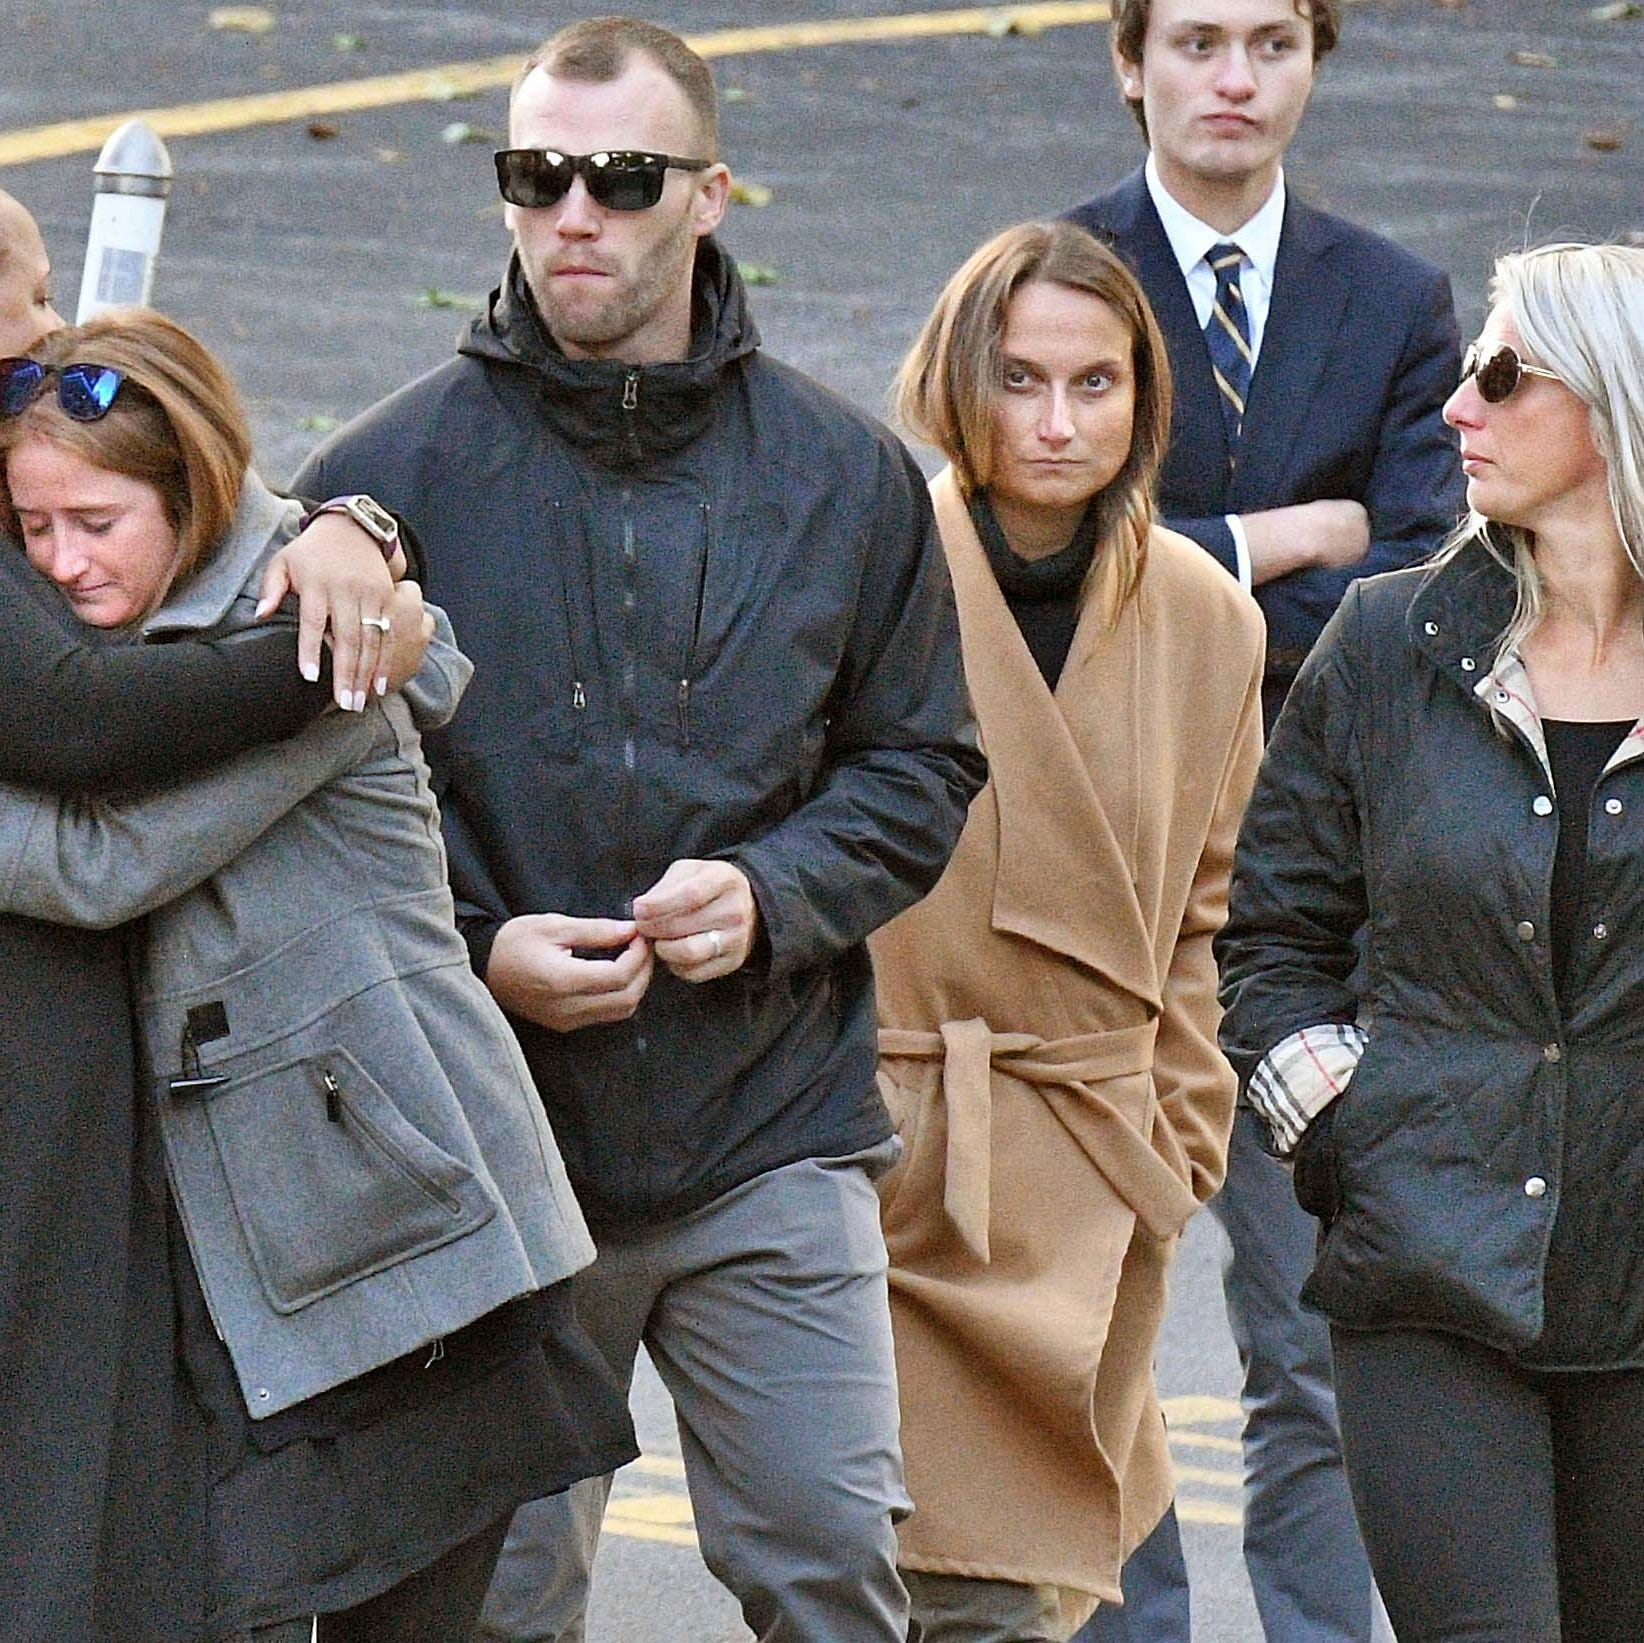 Joint funeral today for sisters killed in New York limo crash